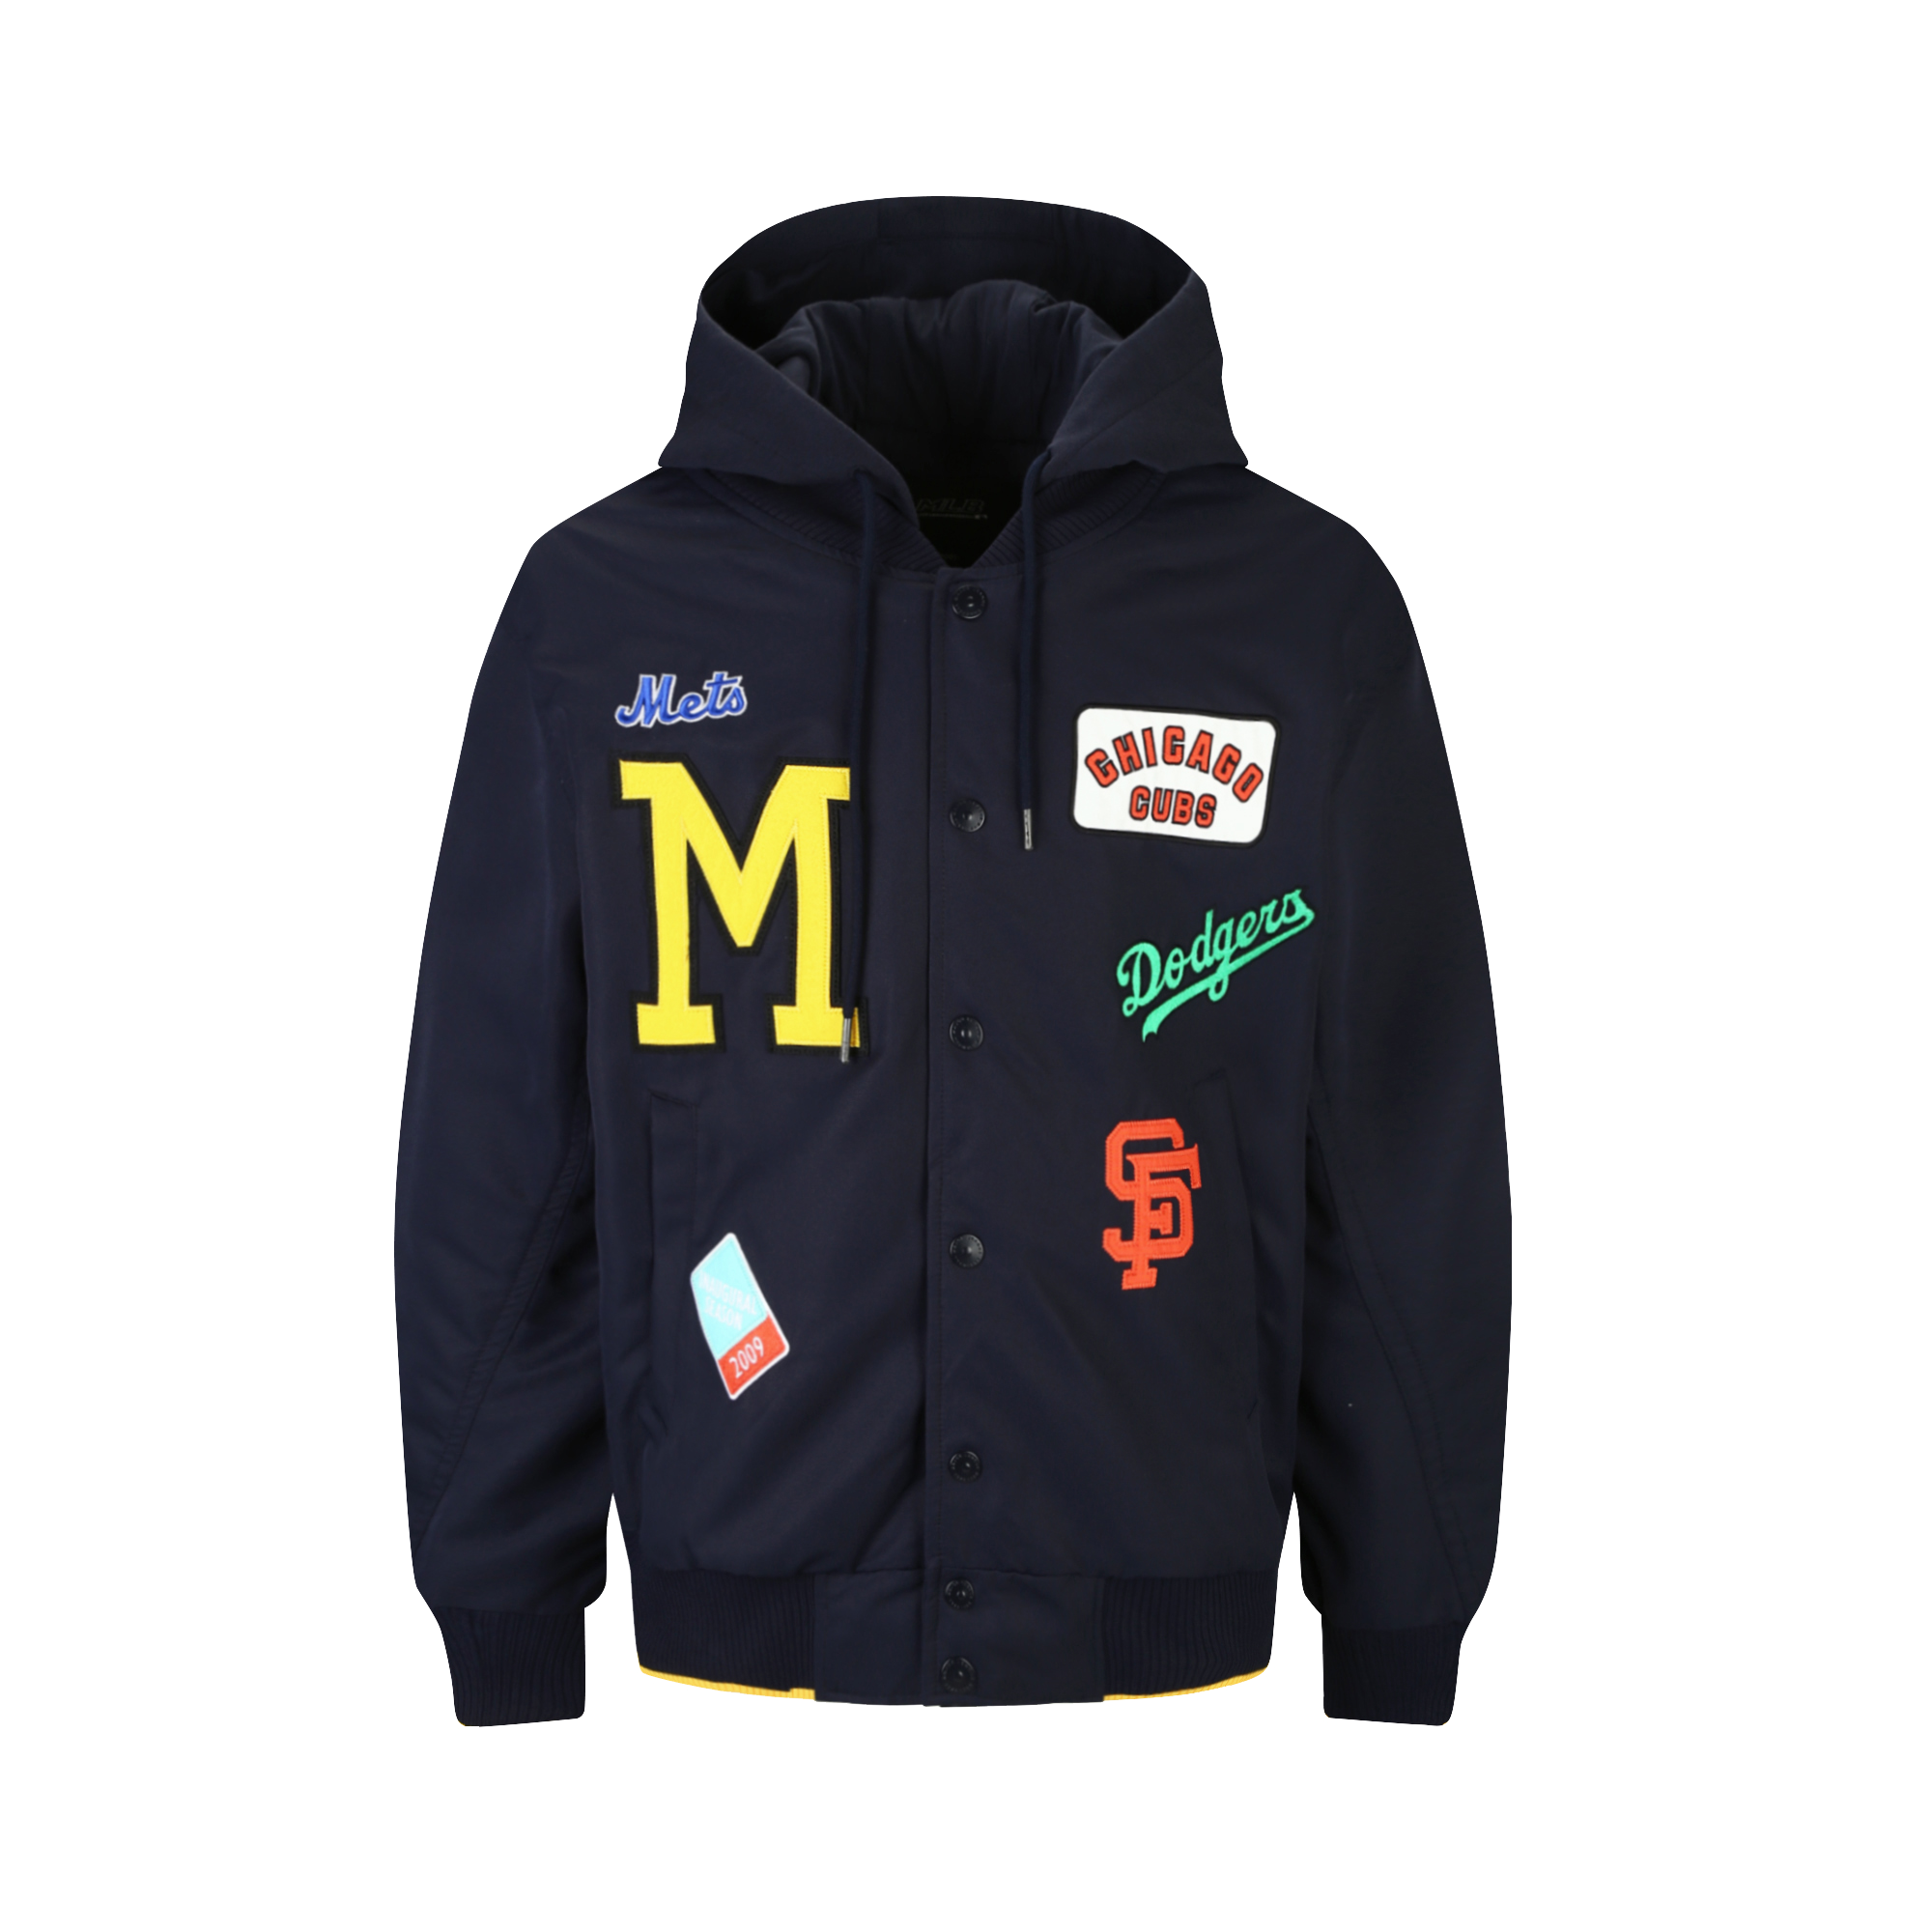 MLB COOPERS INFINITE GAME VARSITY JACKET